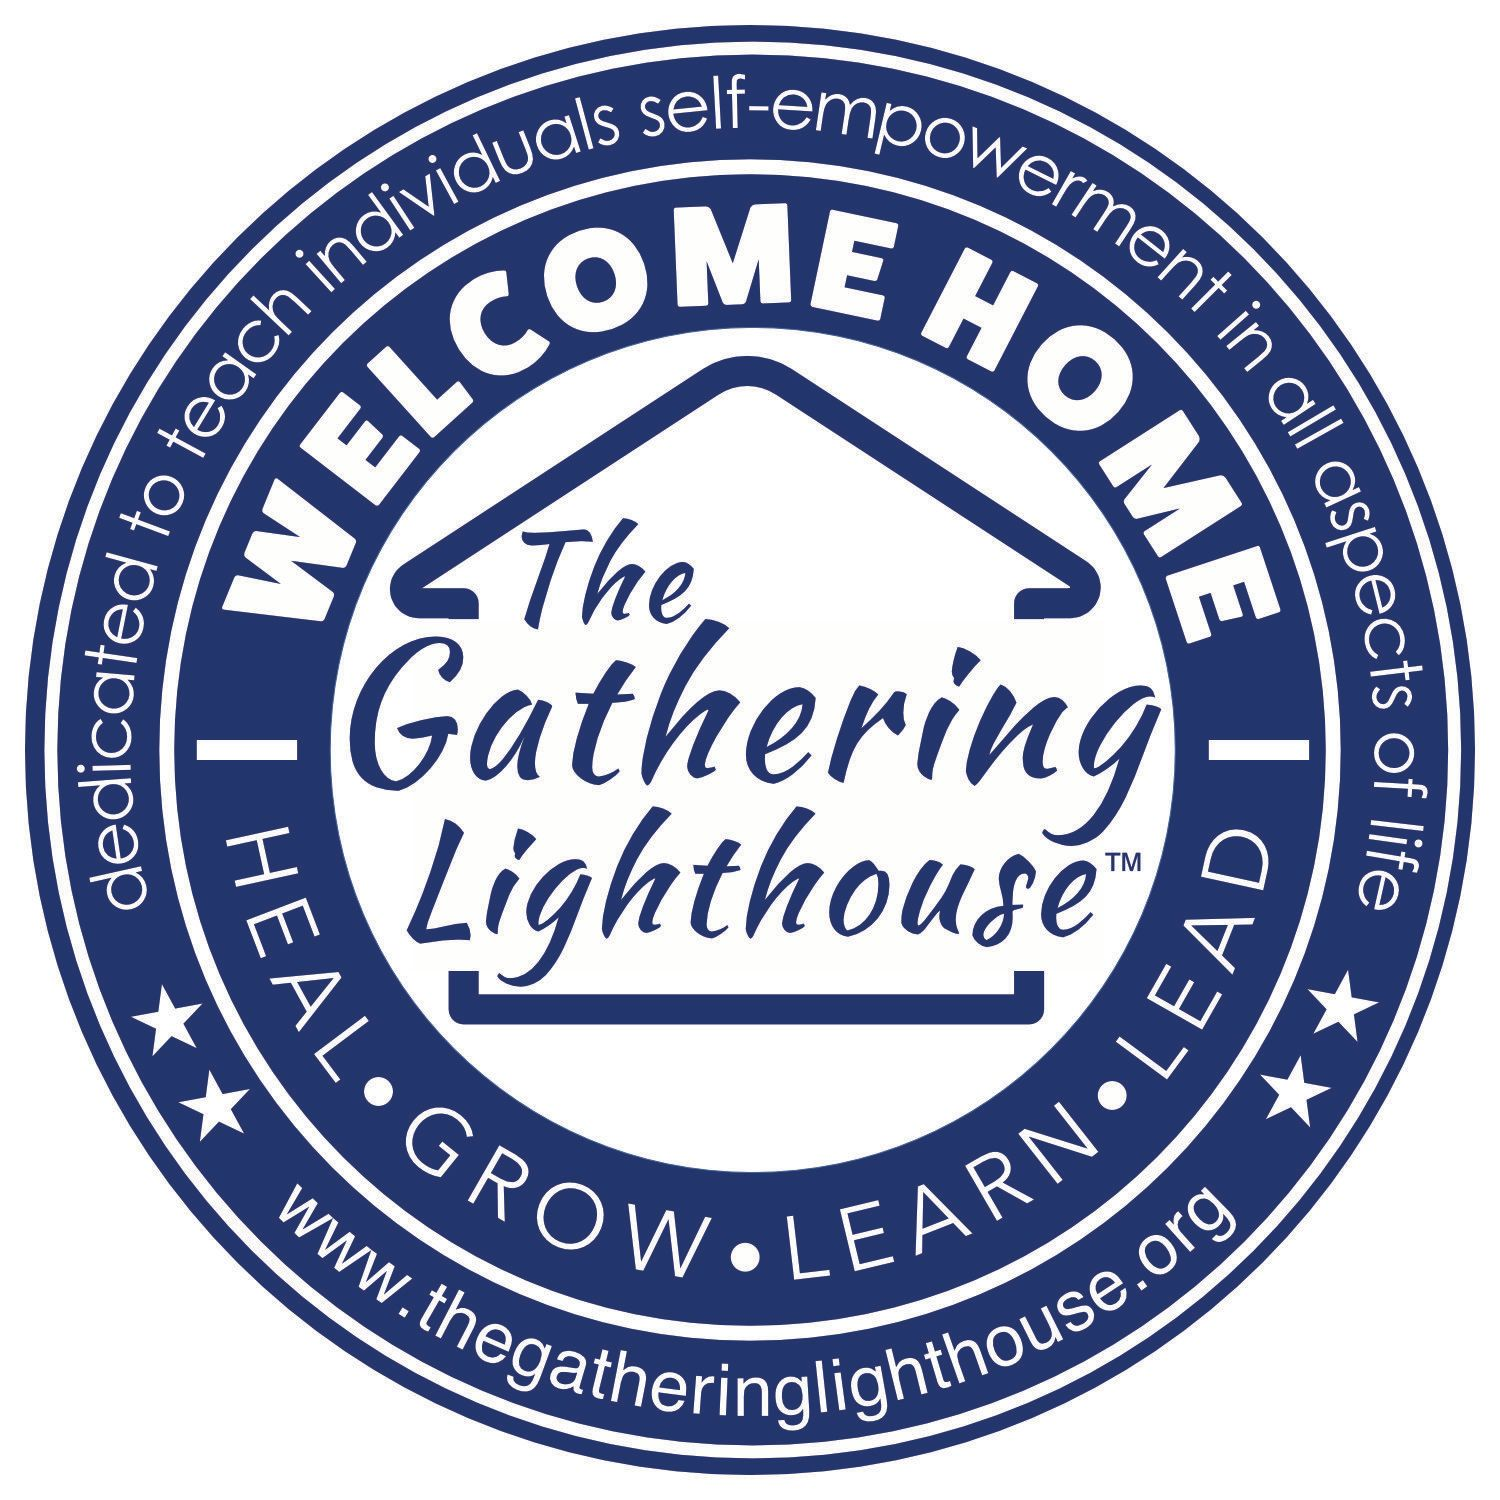 The Gathering Lighthouse Spiritual Education Center